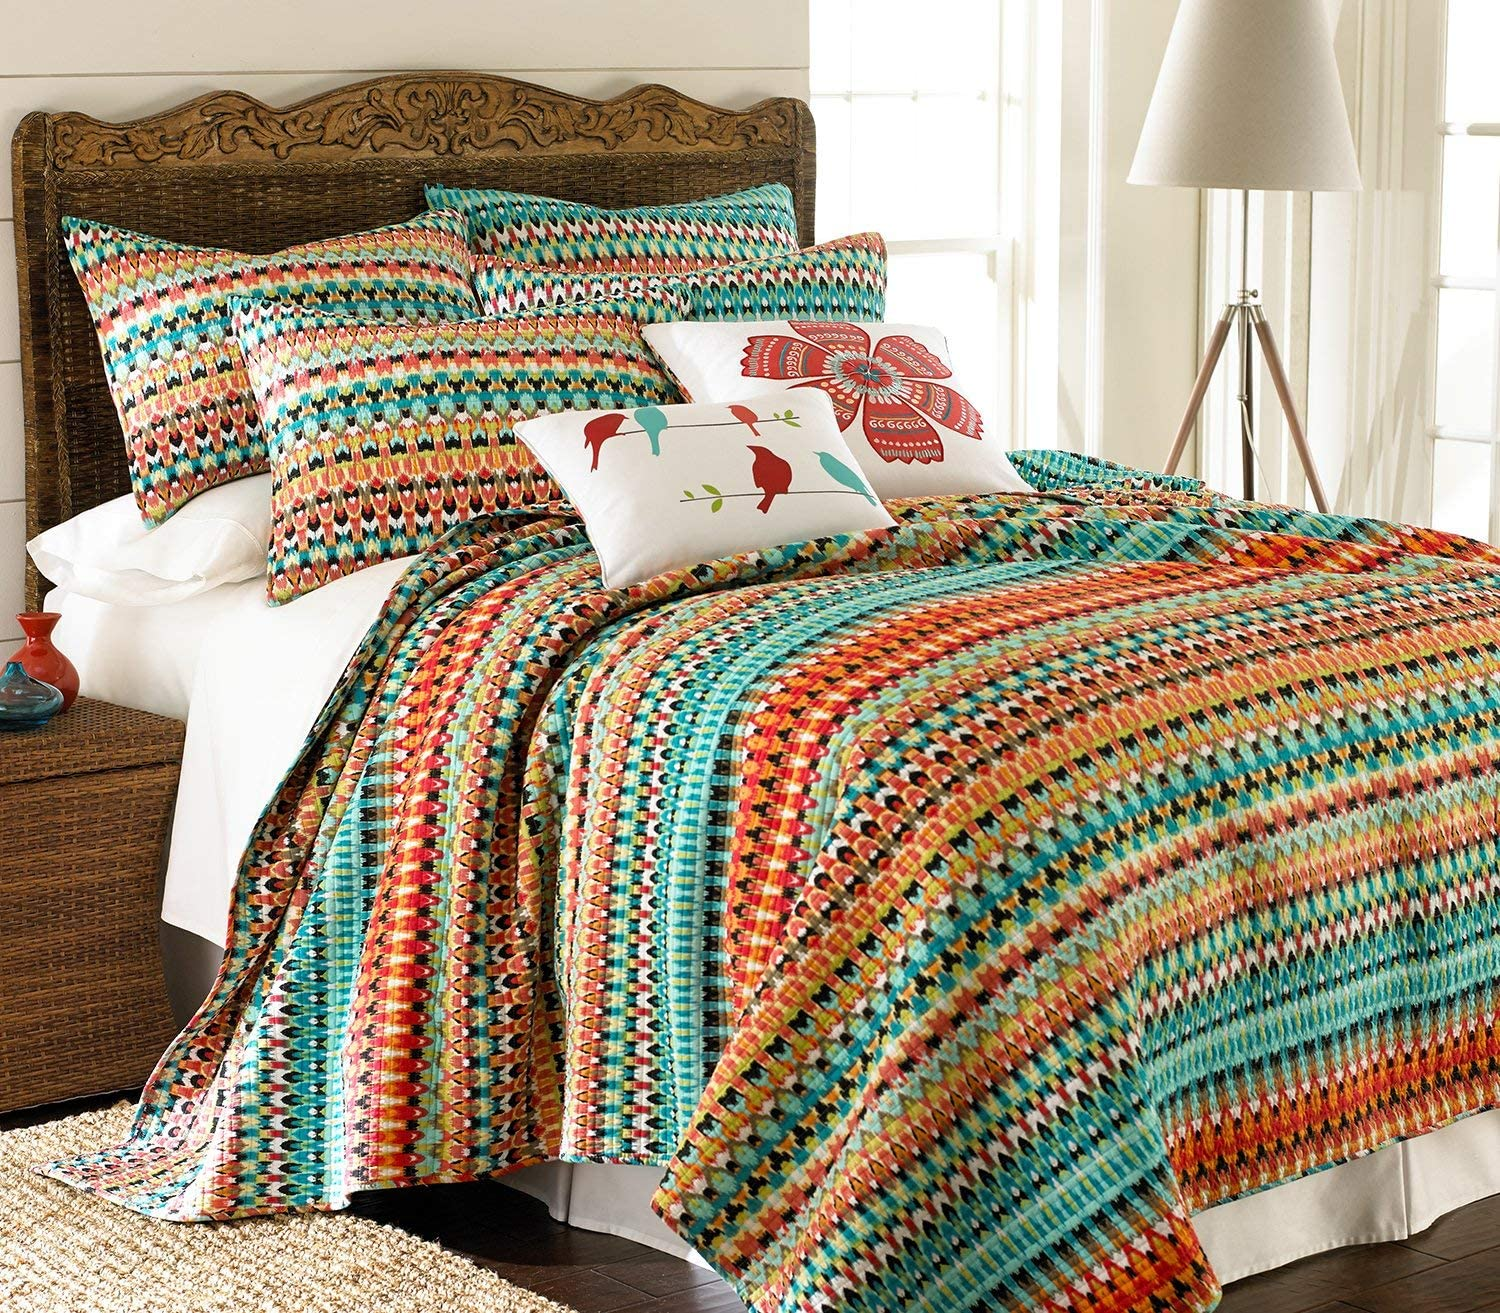 Levtex home Homthreads Corona Quilt Set - Queen Quilt + Two Standard Pillow Shams - Ikat Stripe - Teal Orange Black Yellow Red Green - Quilt (88x92in.) and Pillow Shams (26x20in.) - Cotton Fabric